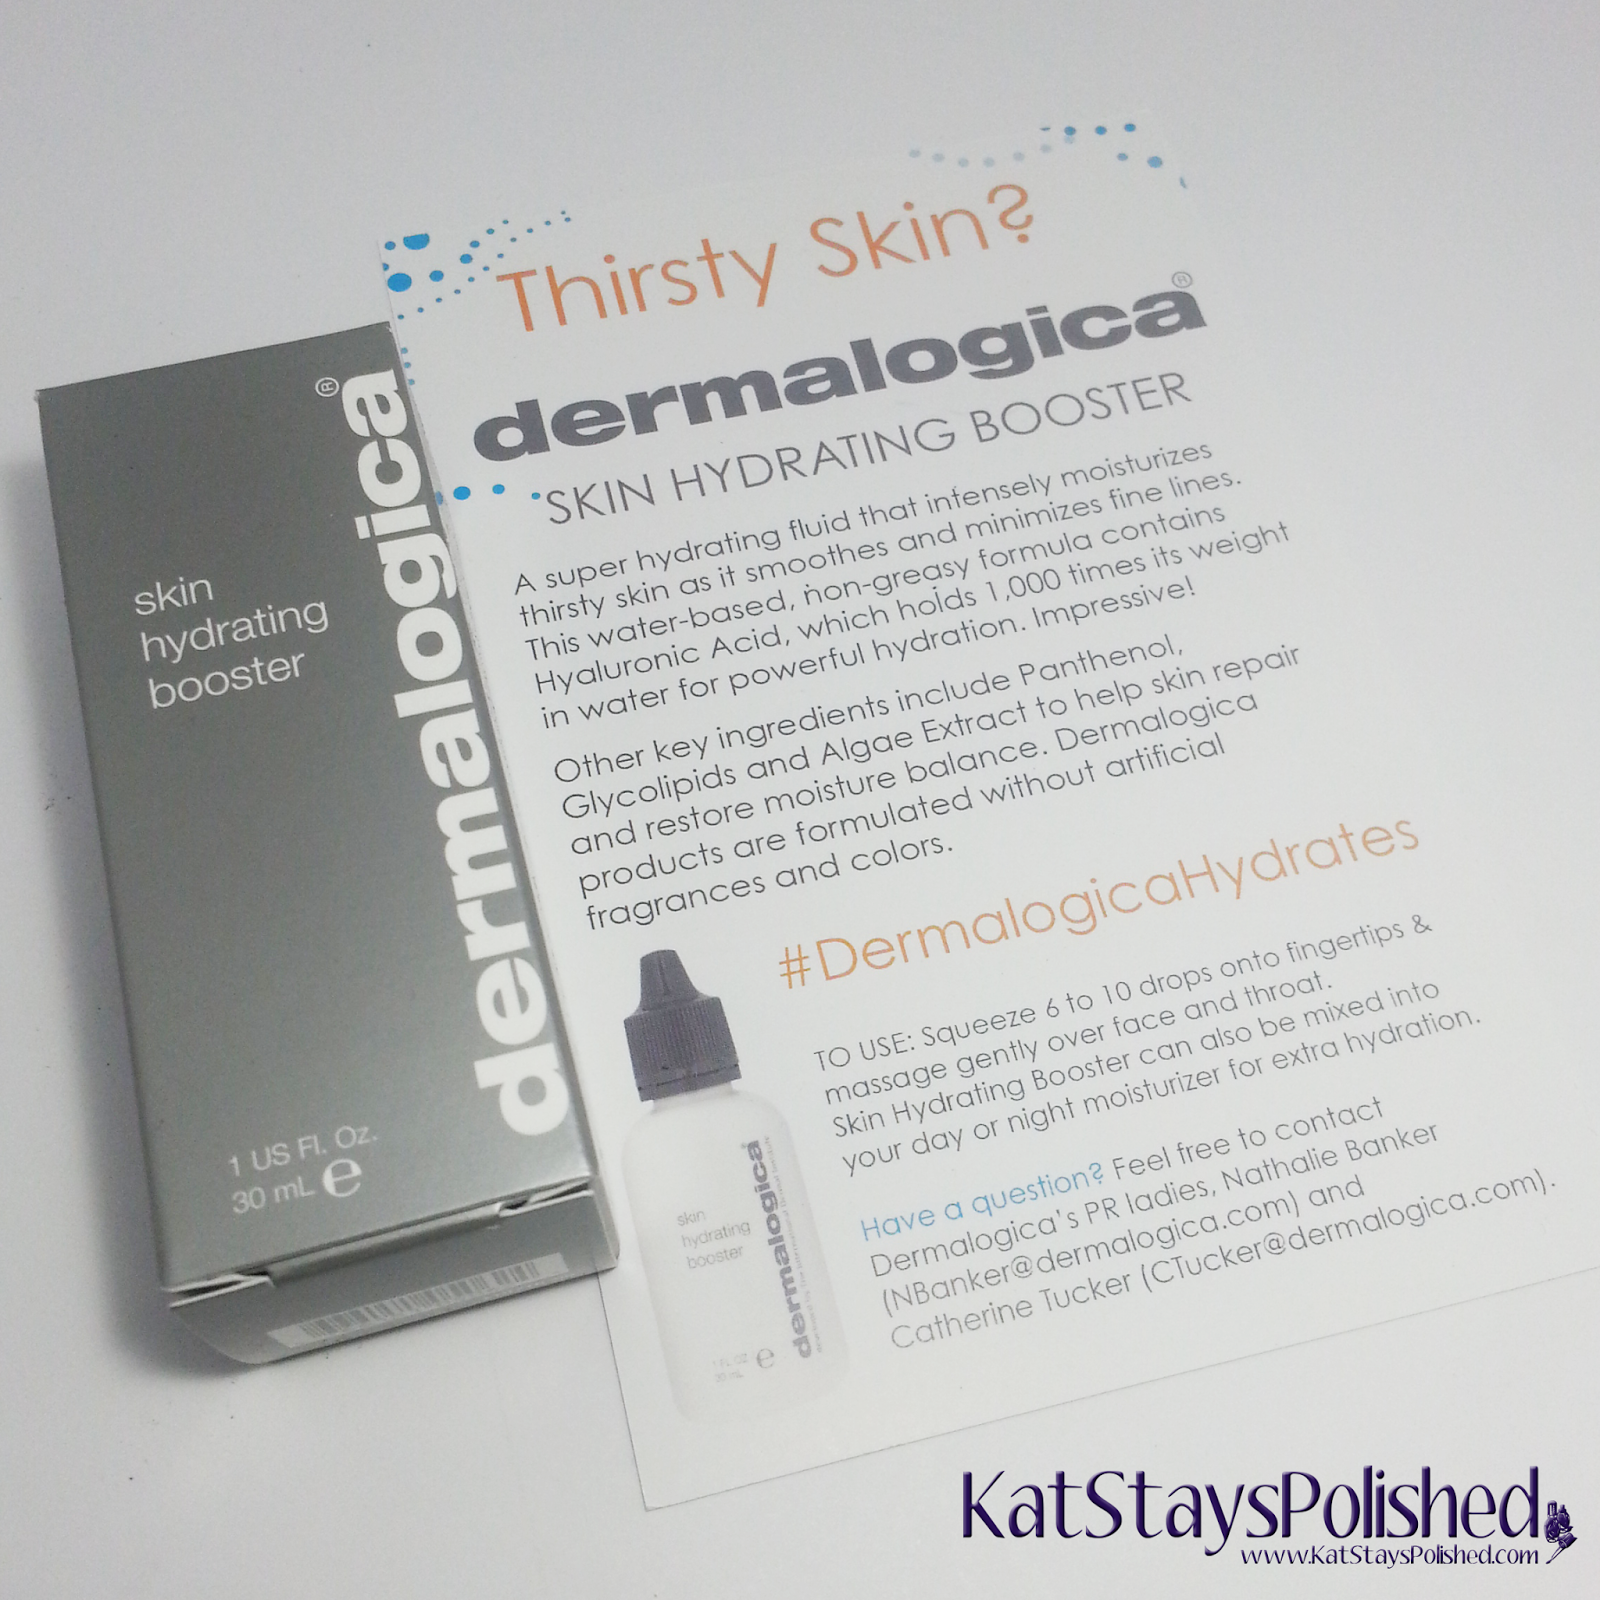 Dermalogica Skin Hydrating Booster | Kat Stays Polished